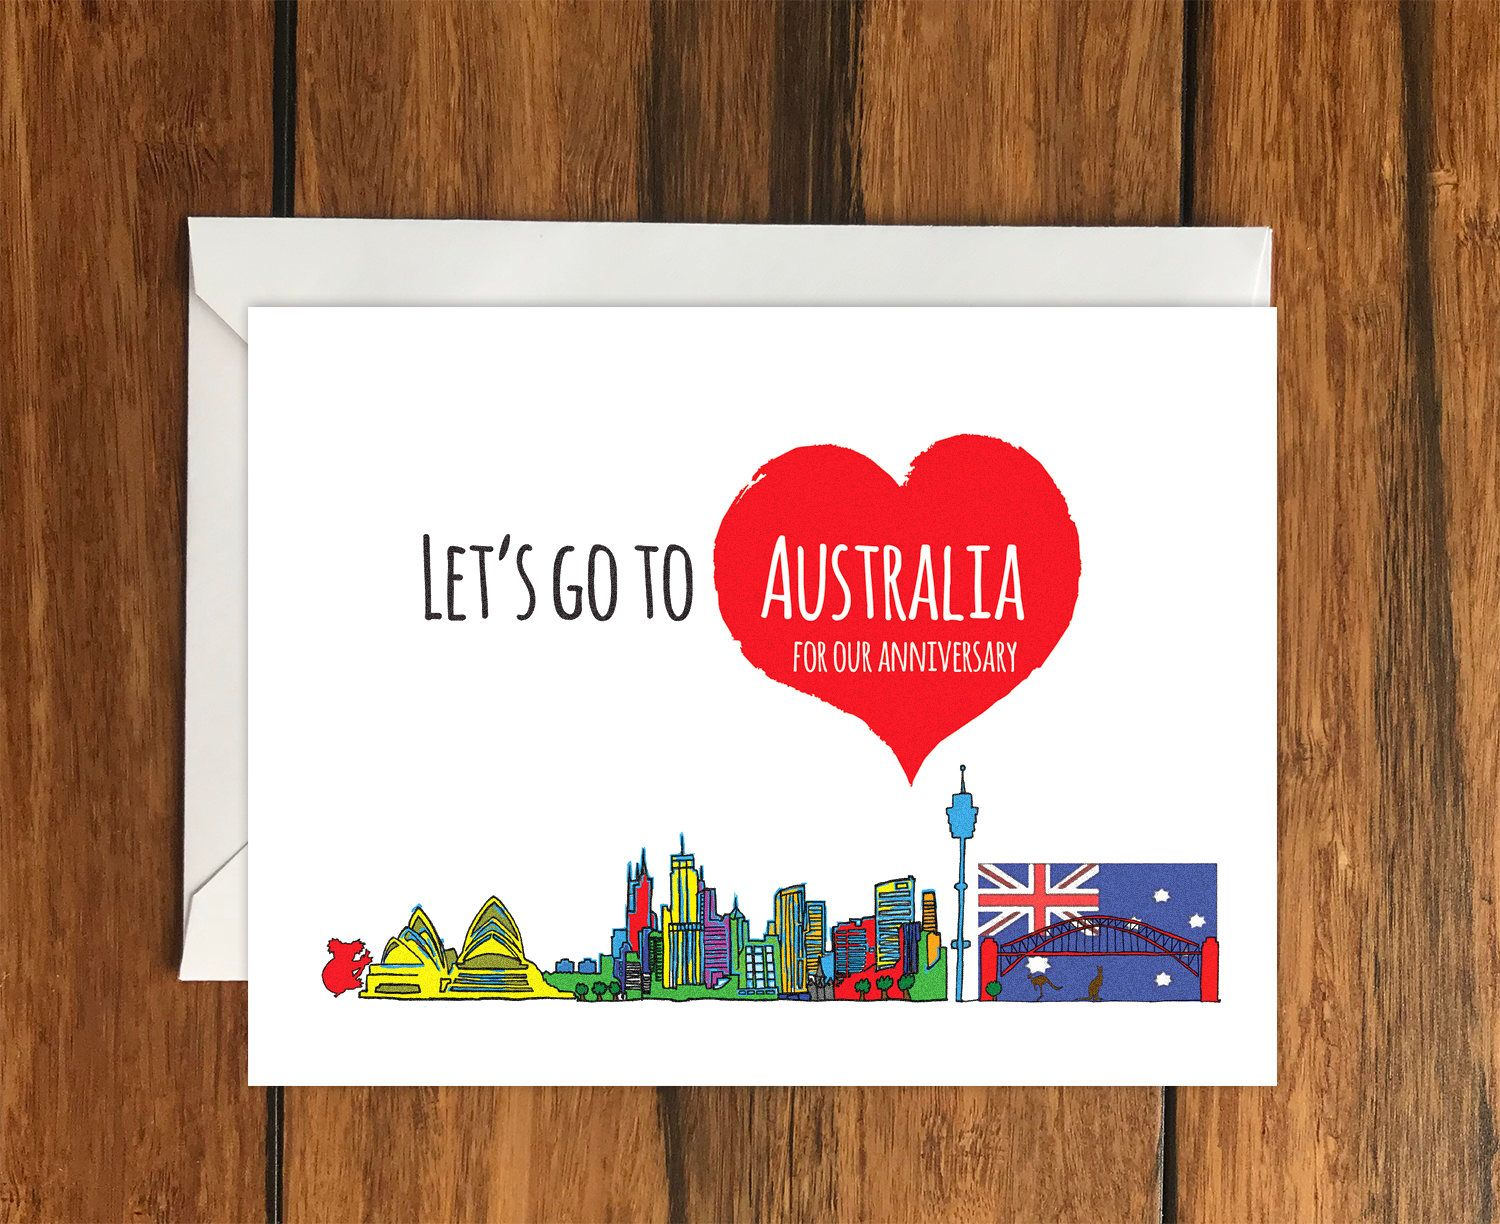 Lets go to australia for our anniversary blank greeting card a6 lets go to australia for our anniversary blank greeting card a6 holiday gift idea m4hsunfo